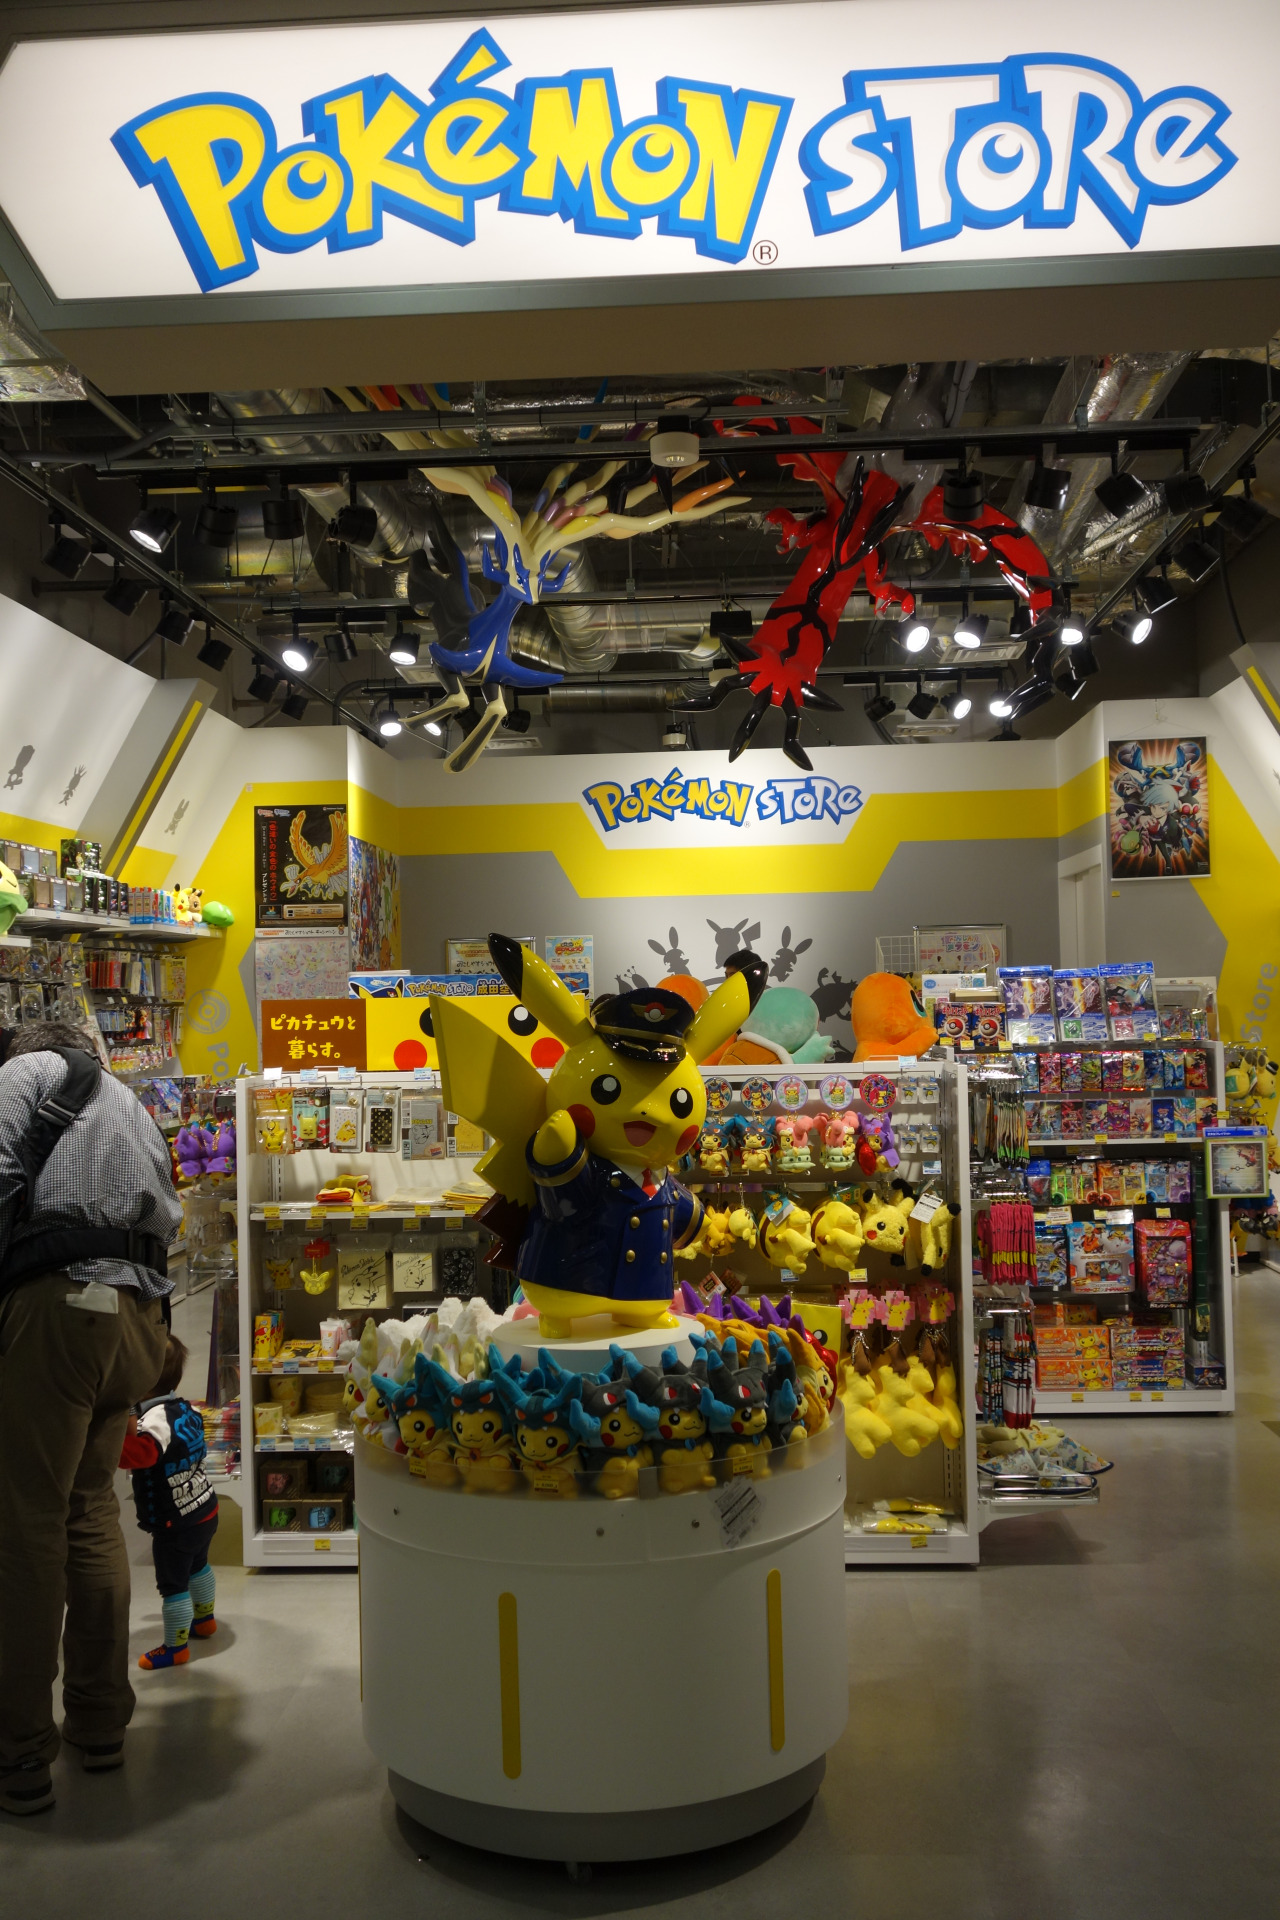 Pokemon Store Narita Airport International Retail Toy Product